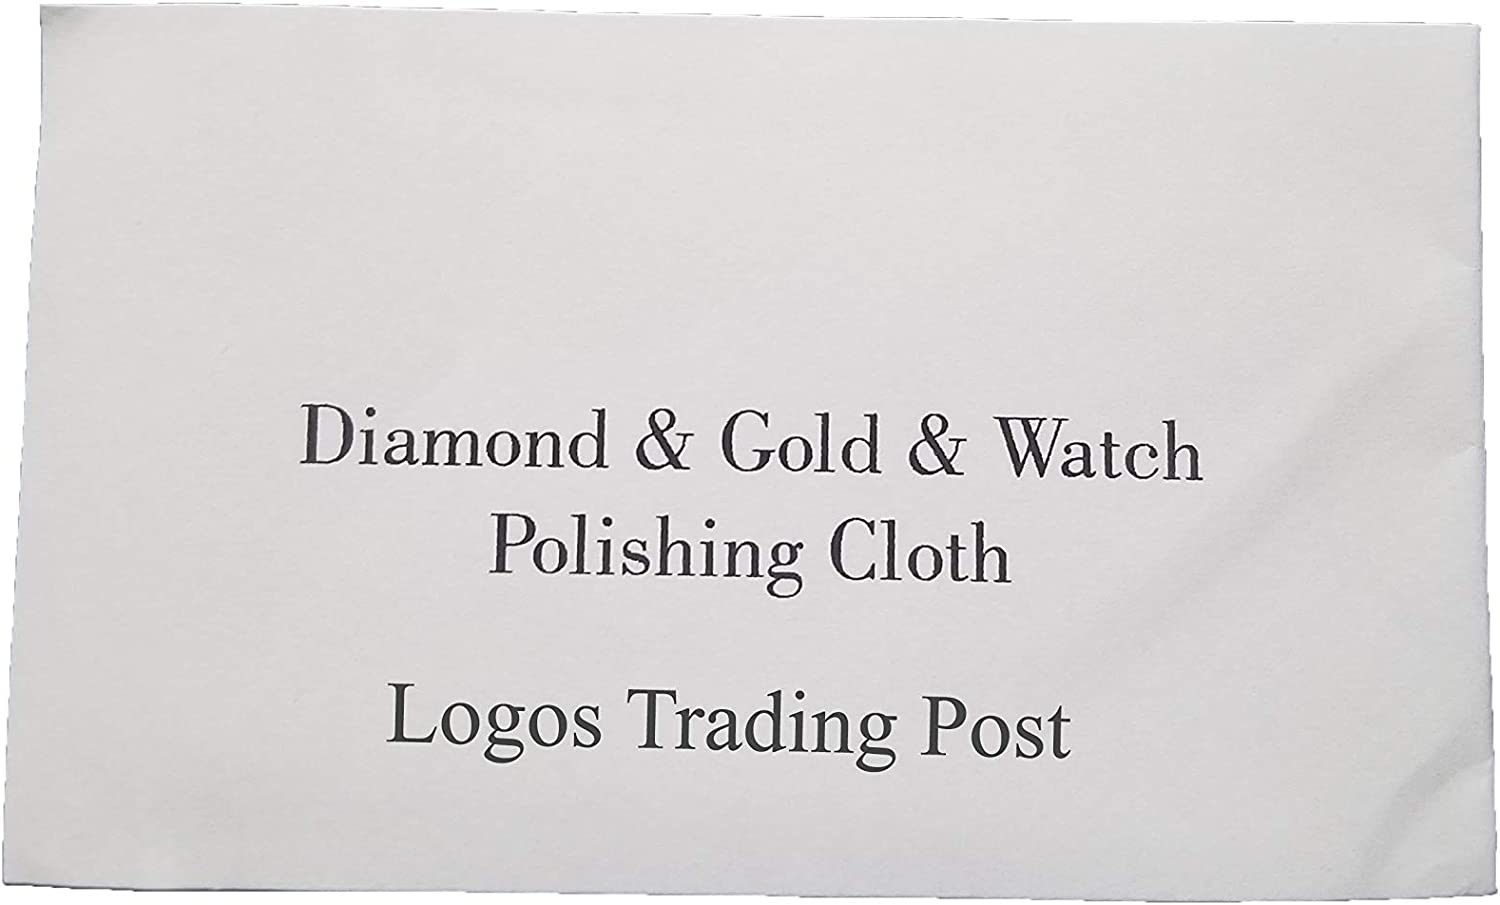 Reusable Logos Trading Post Microfiber Jewelry Polishing Cloth Restore All of Your Jewelry to Its Original Beauty! Pack of 5